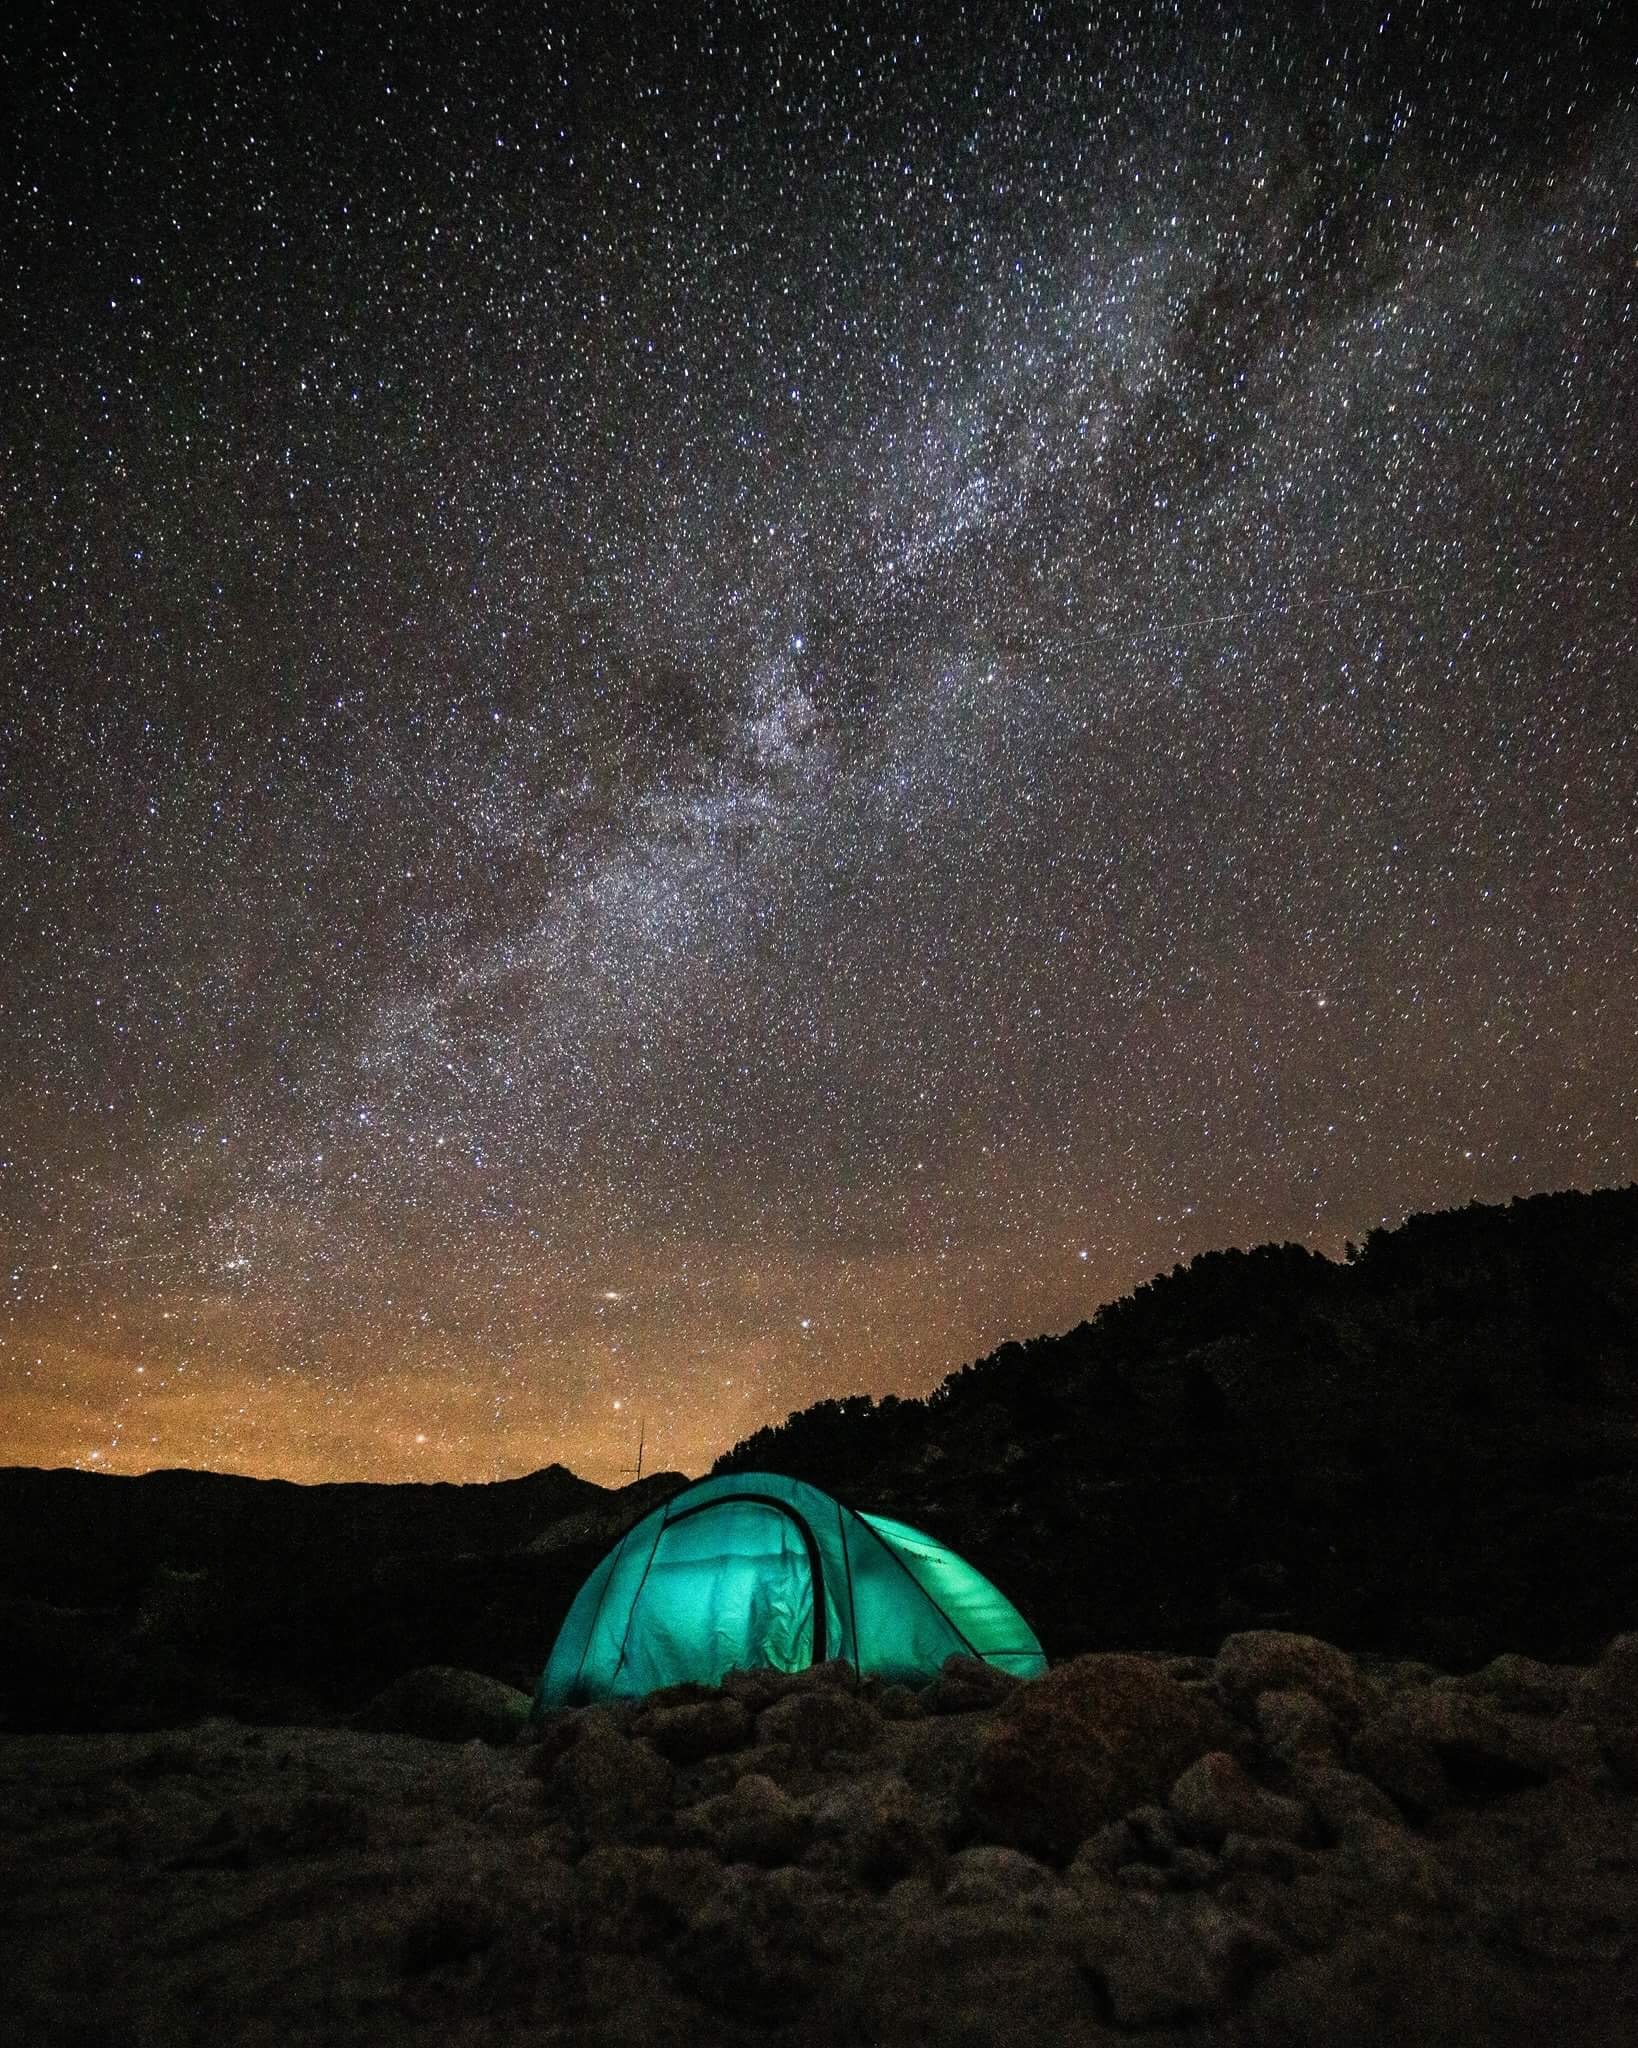 green tent under sky with stars